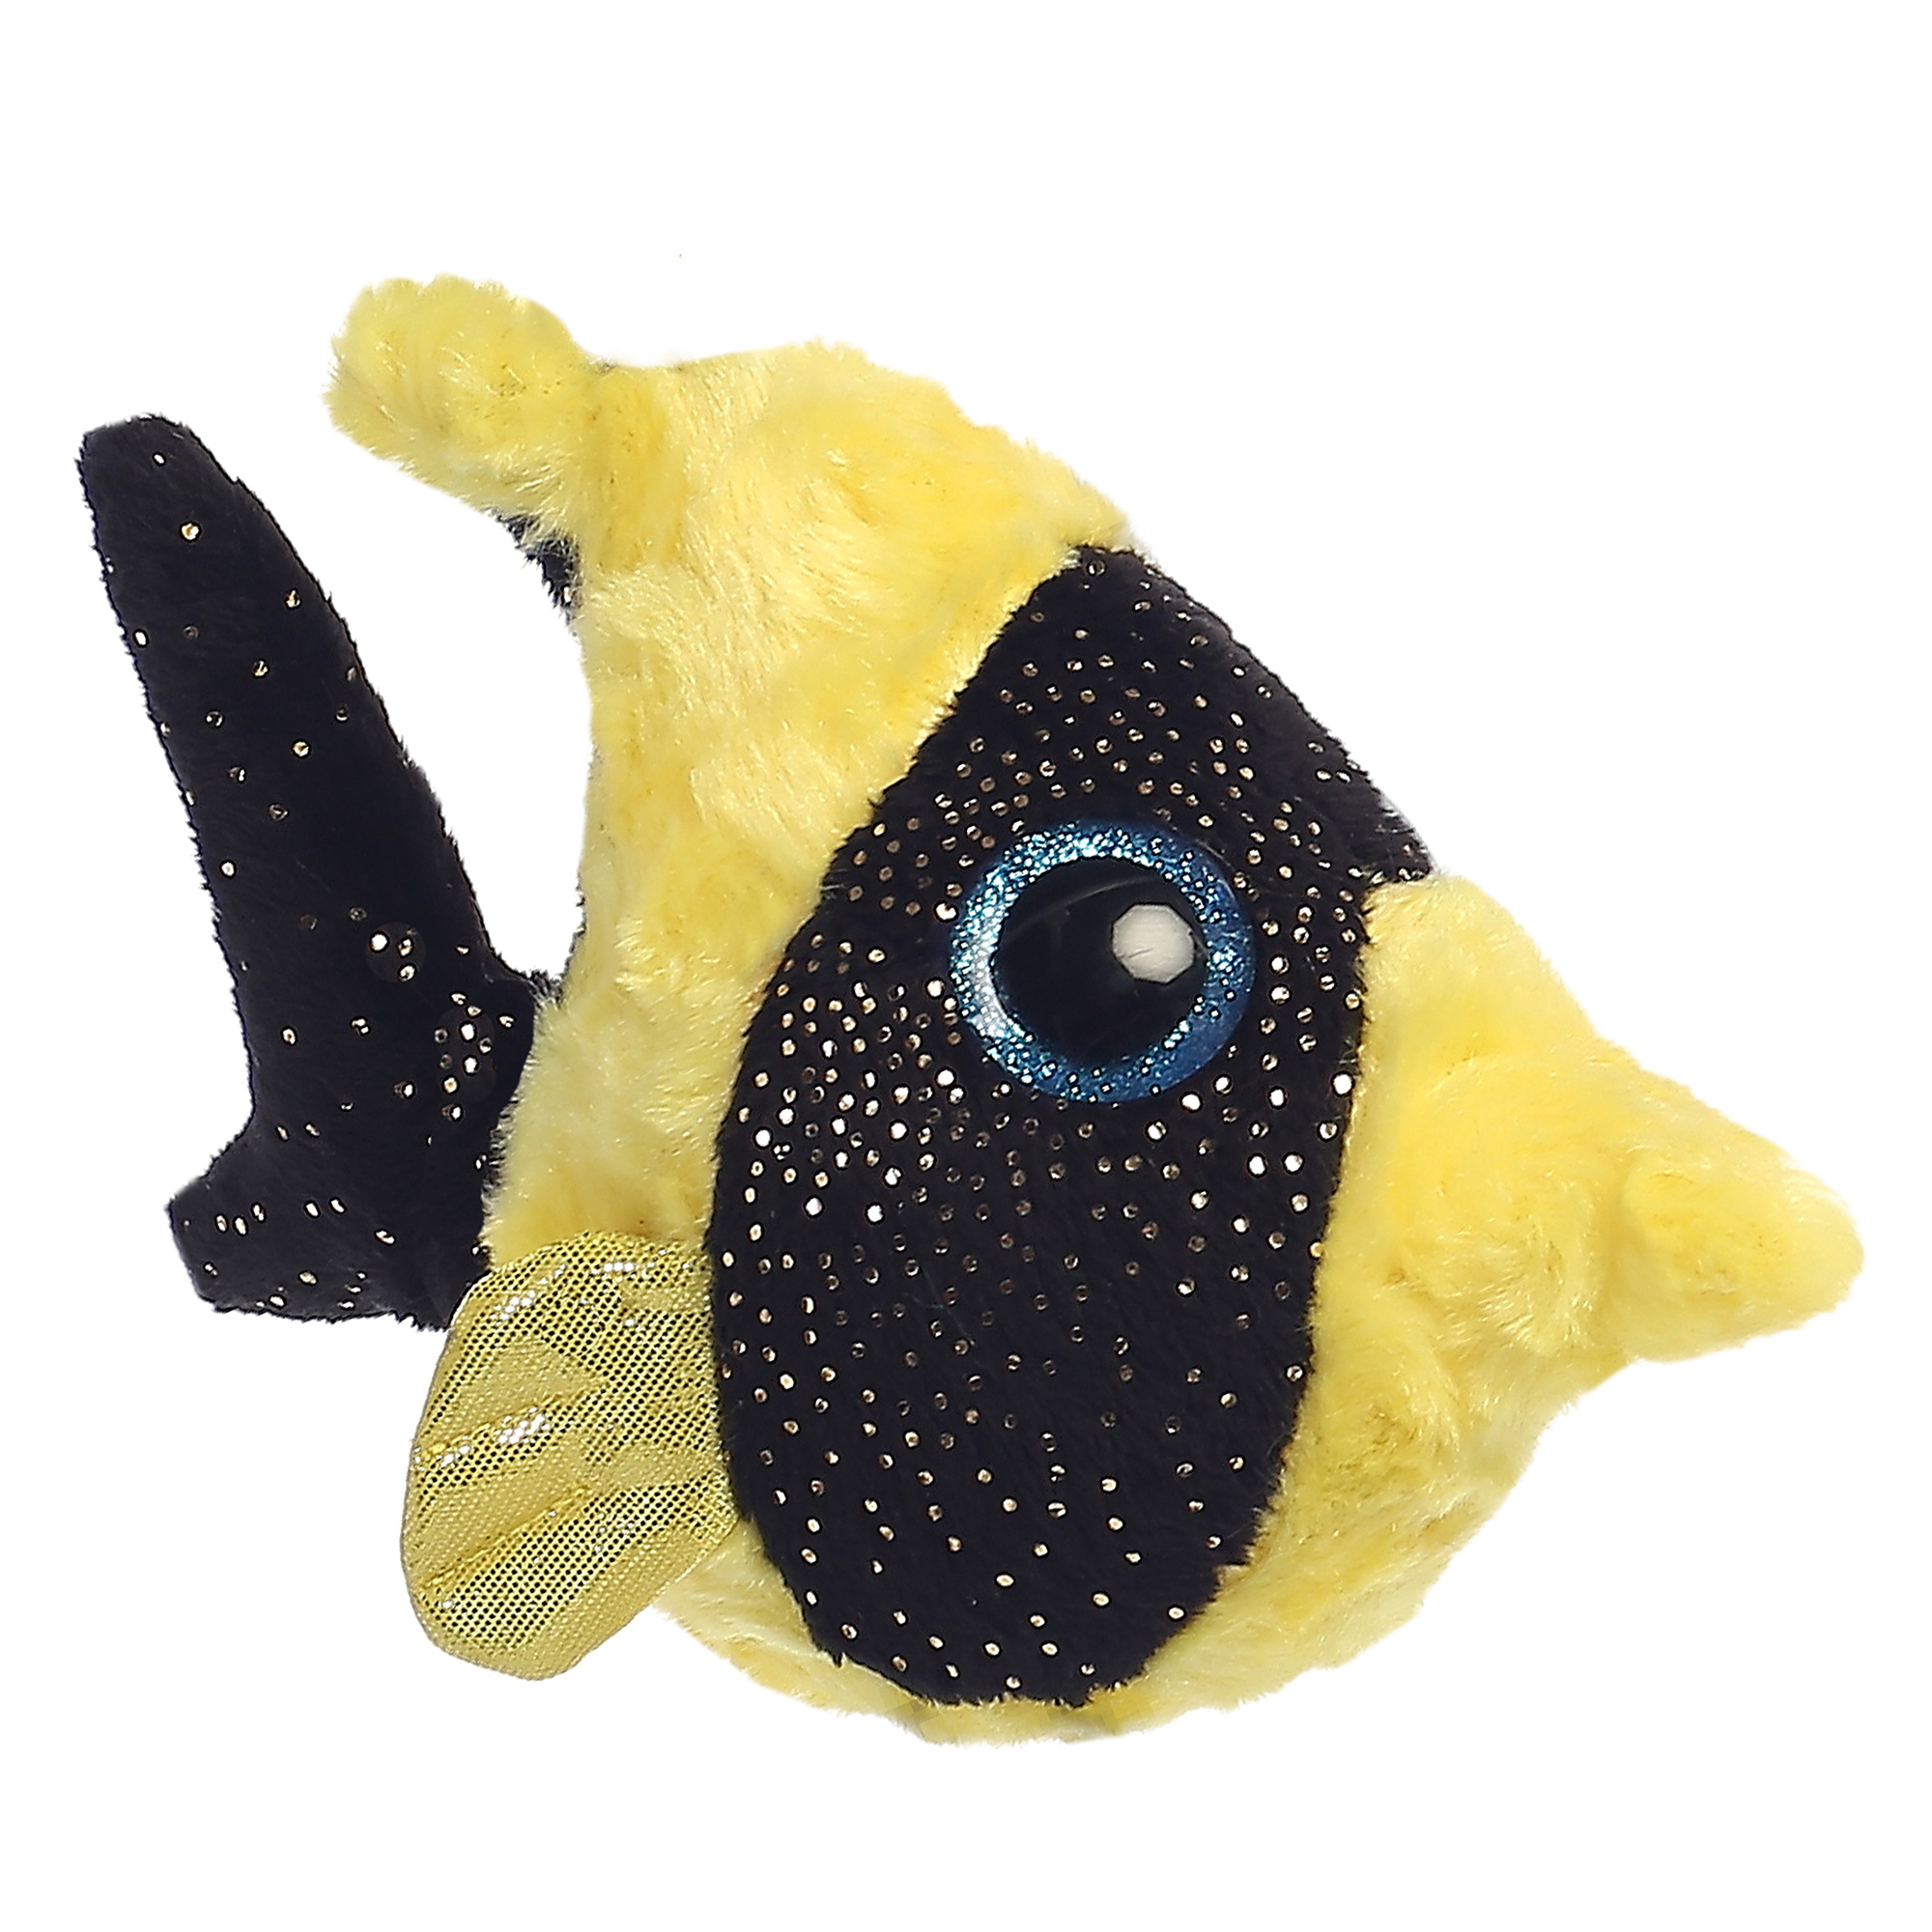 YooHoo & Friends 8-Inch Mooree Moorish Idol Fish